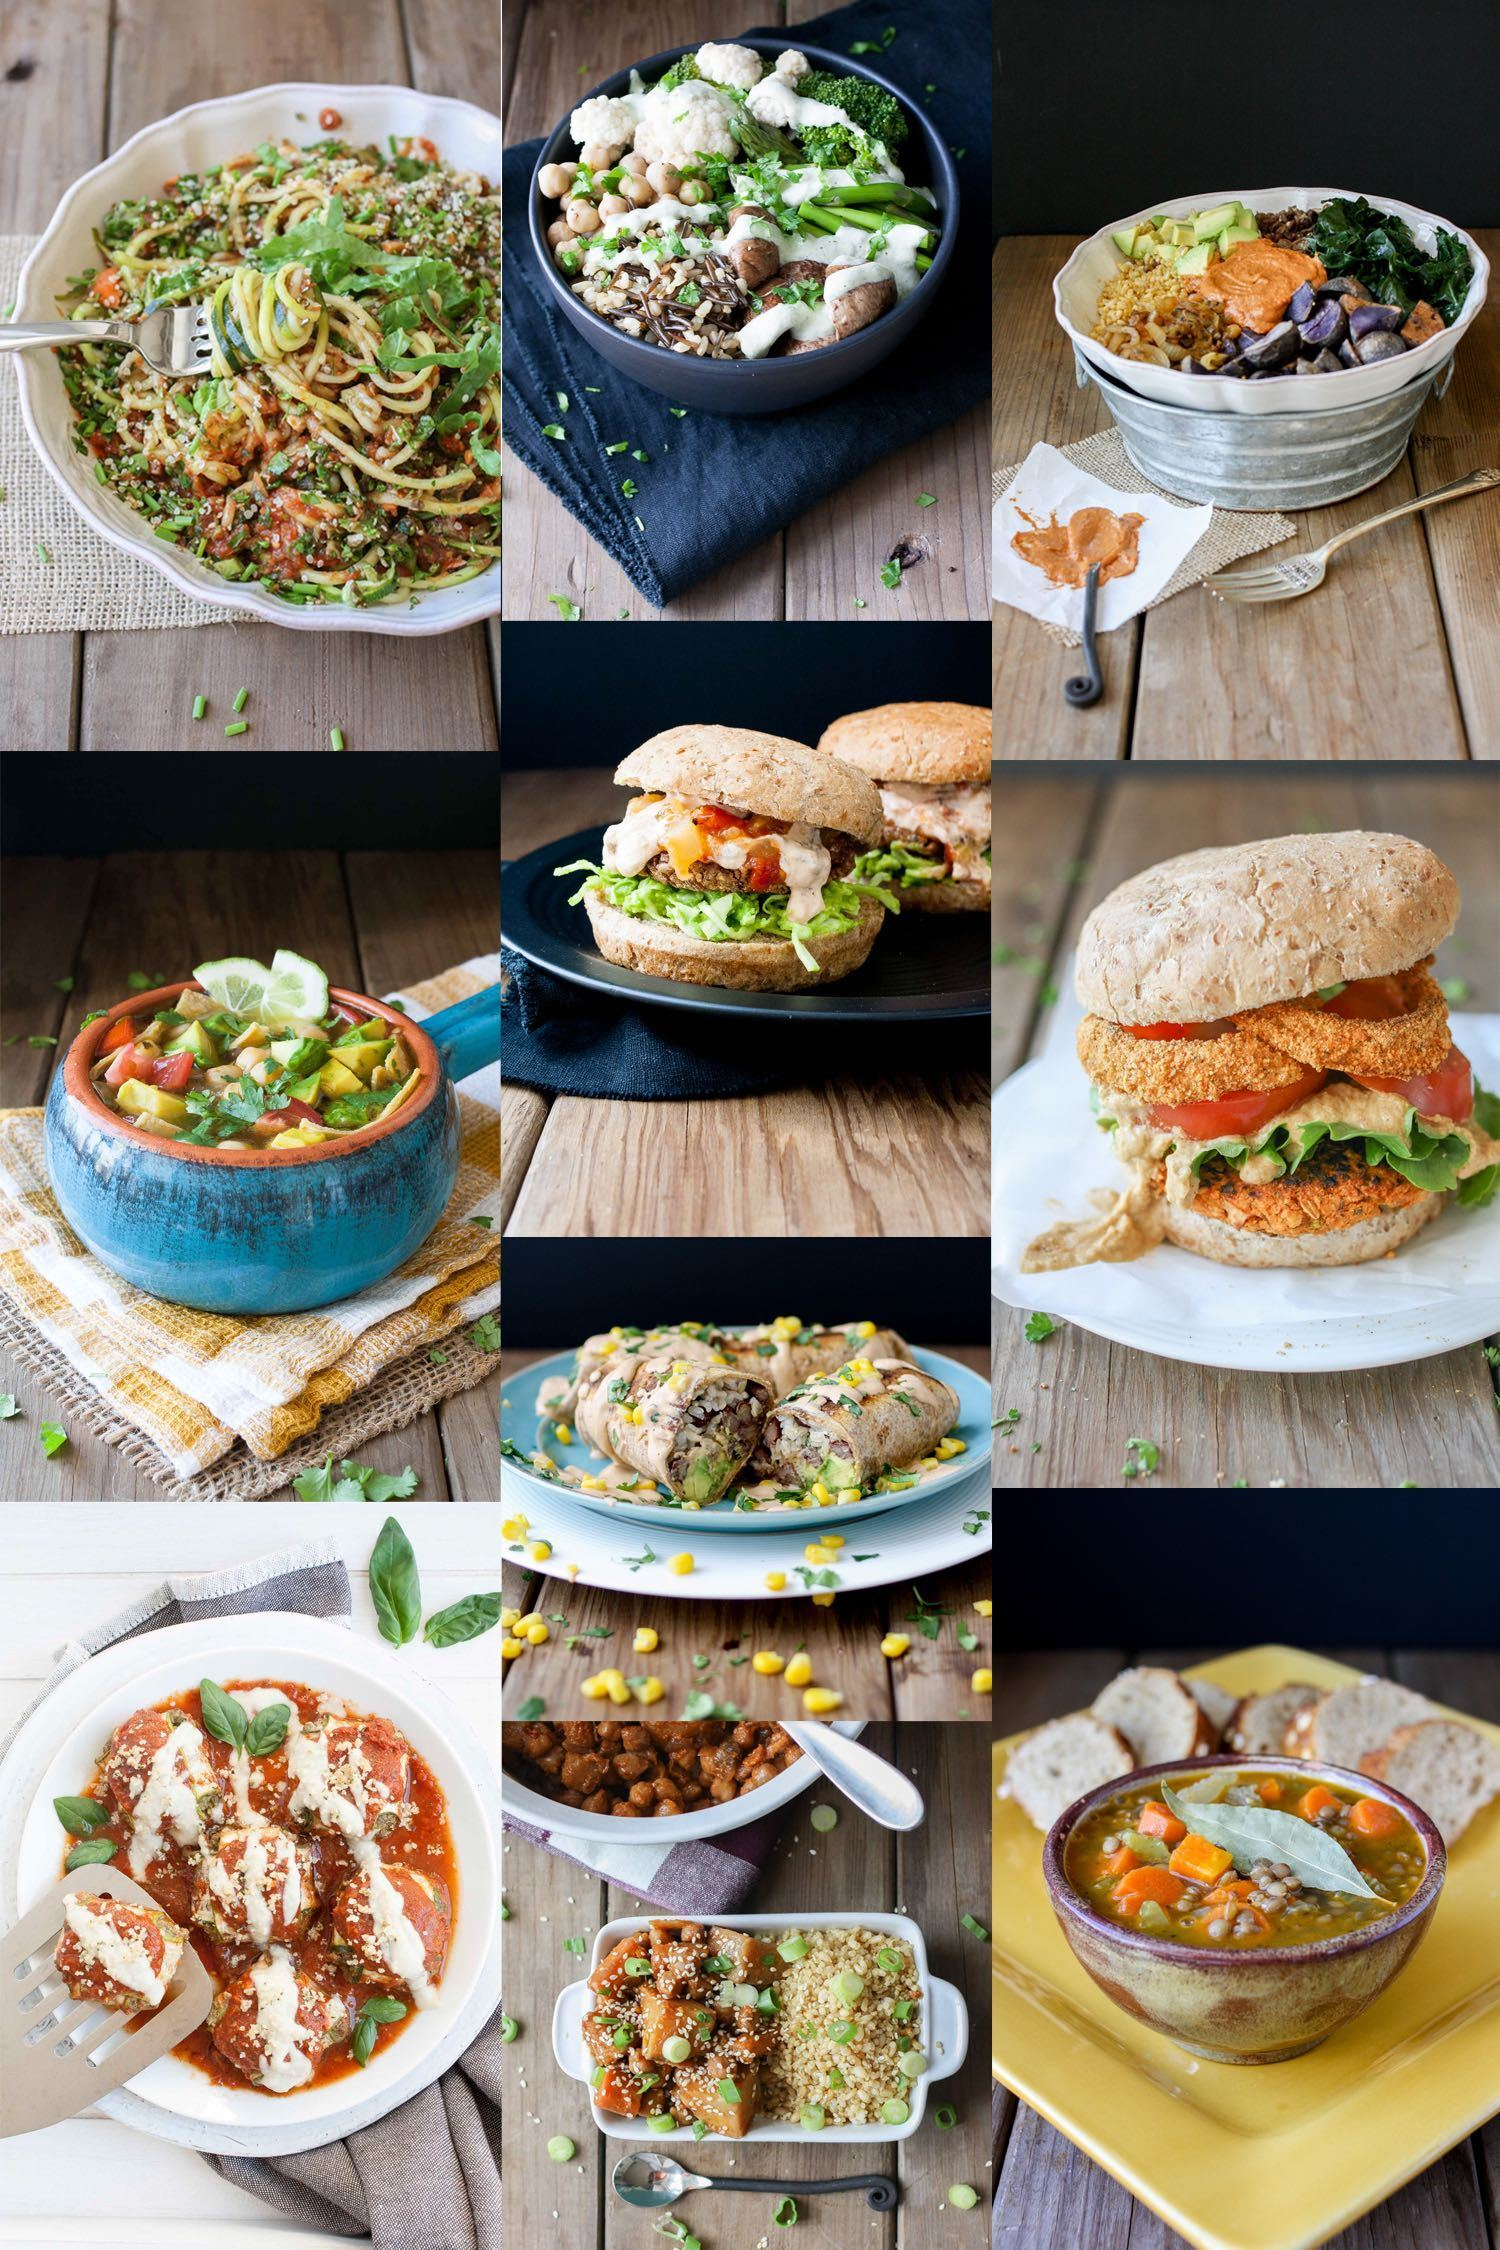 Top 10 Easy Healthy New Year's Recipes!